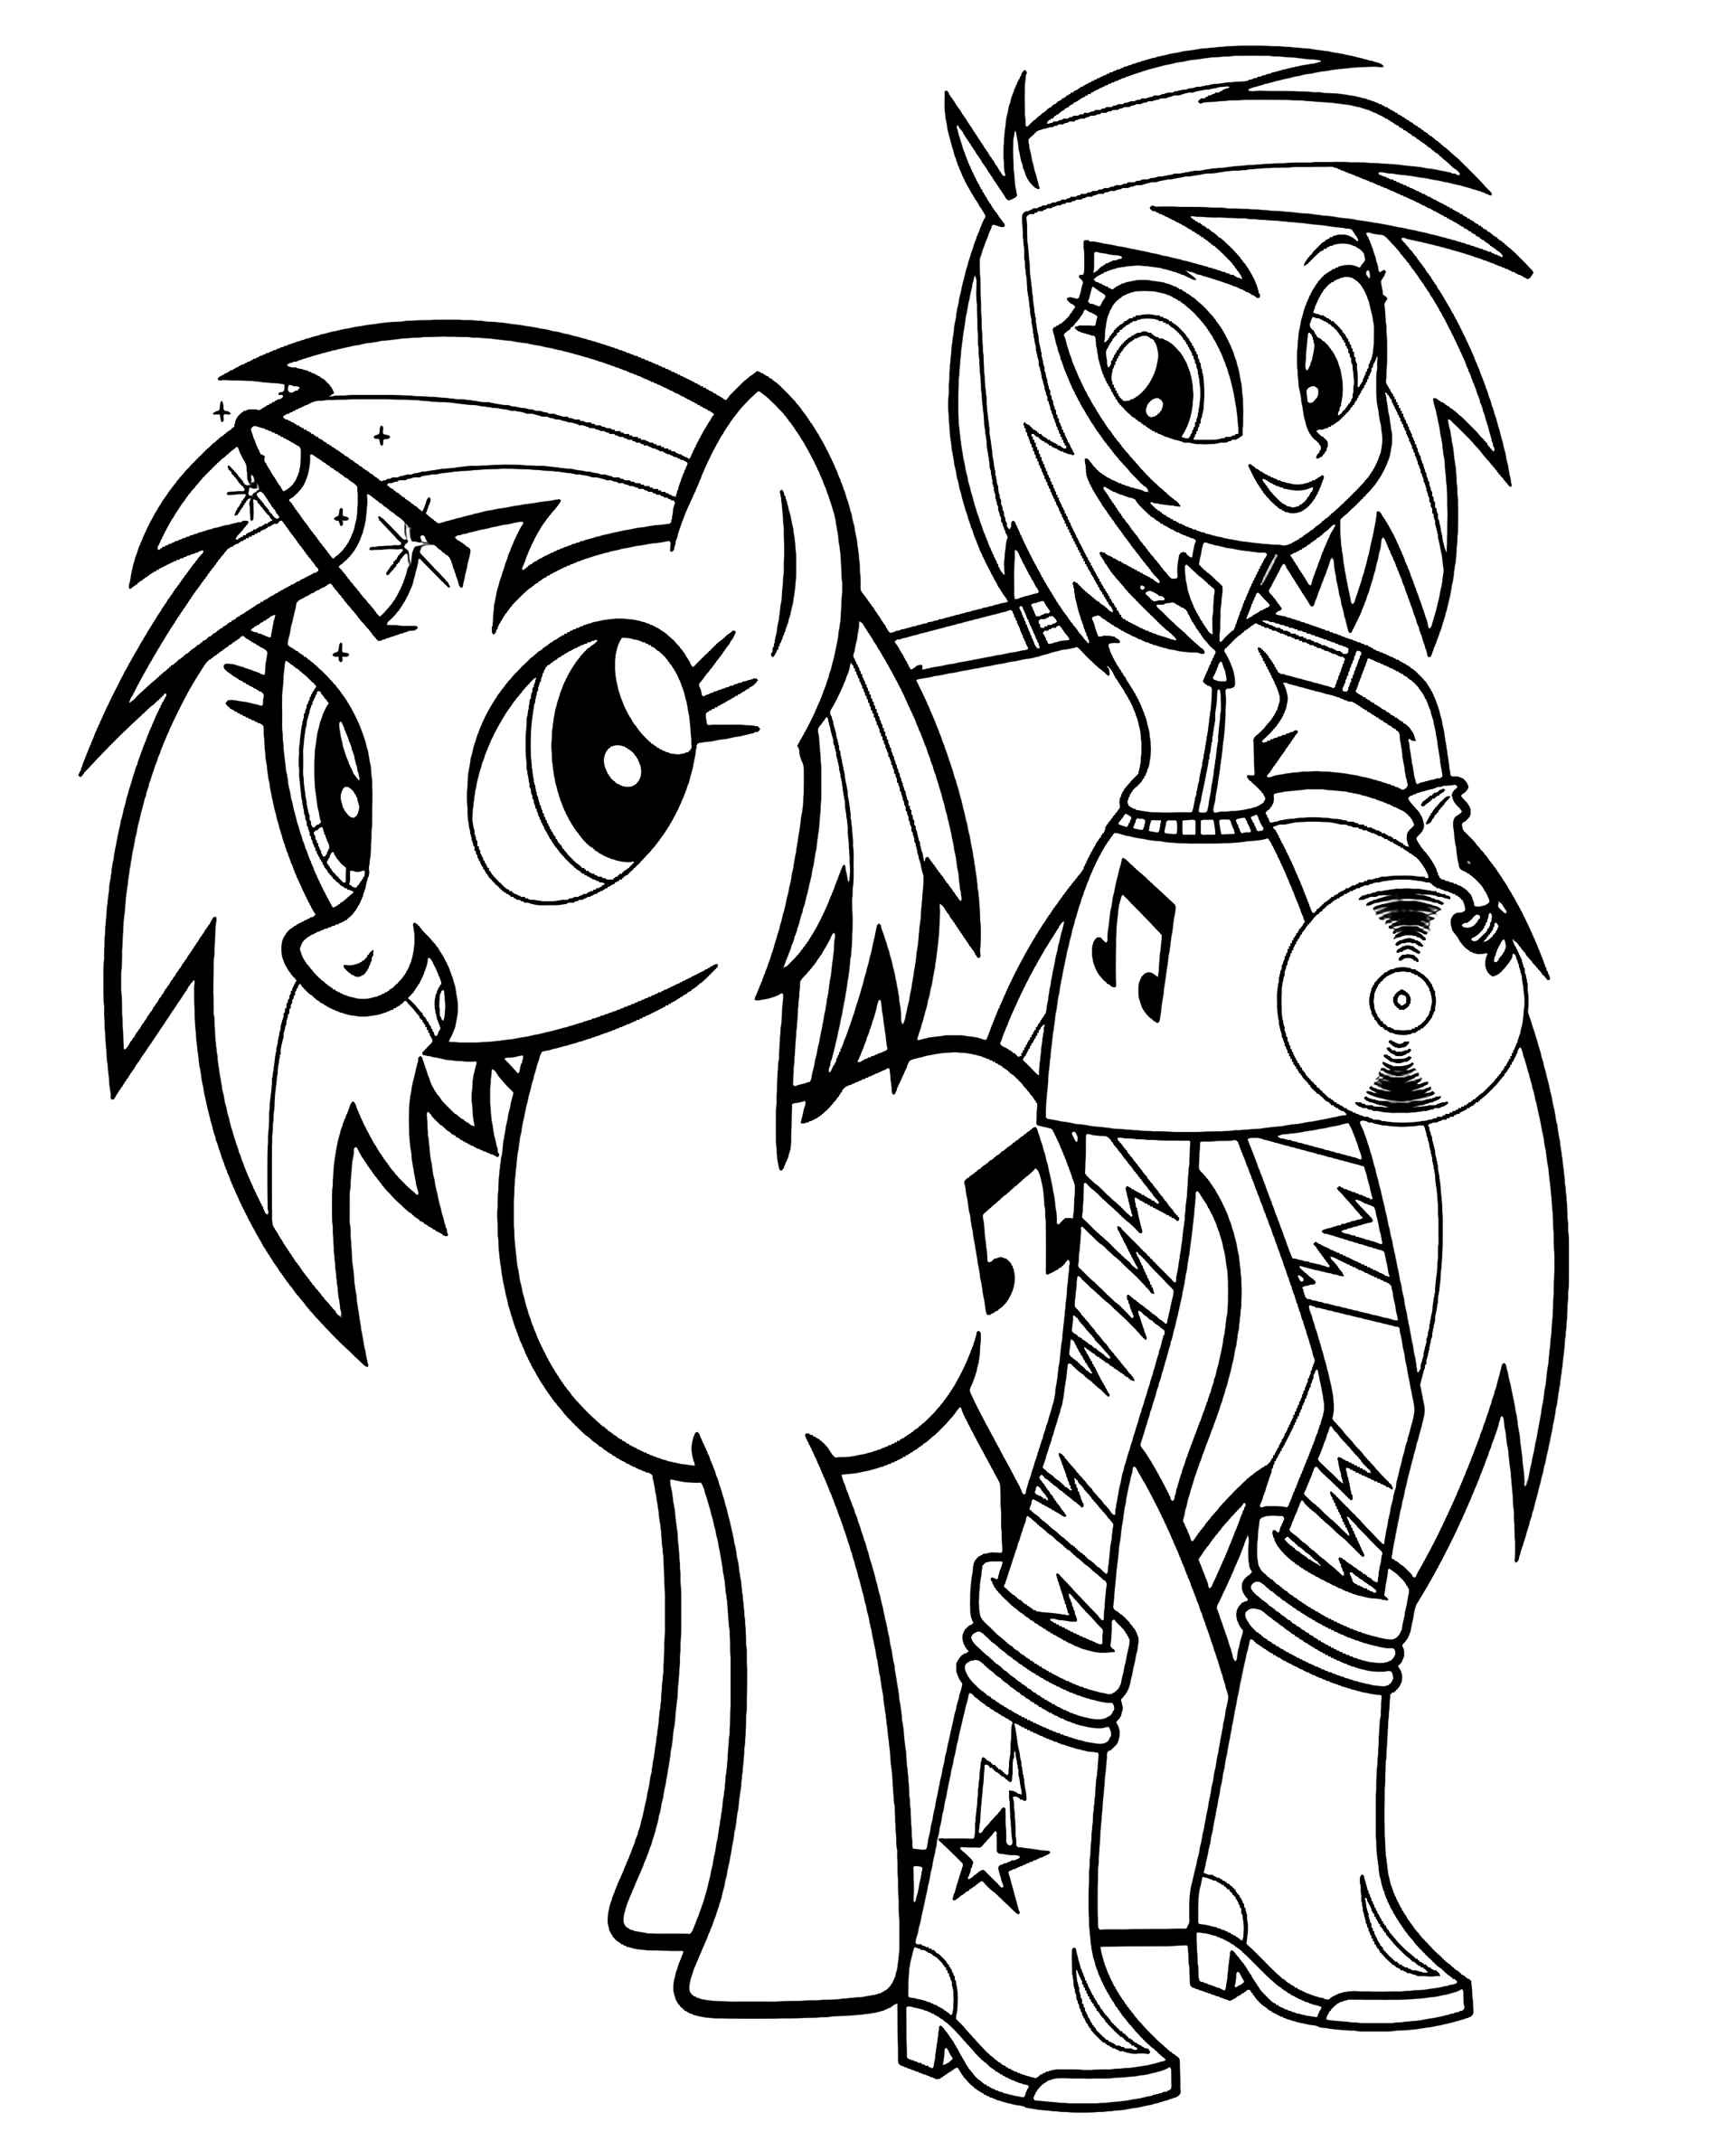 Image Of Music Pony And Music Girl From My Little Pony The Movie